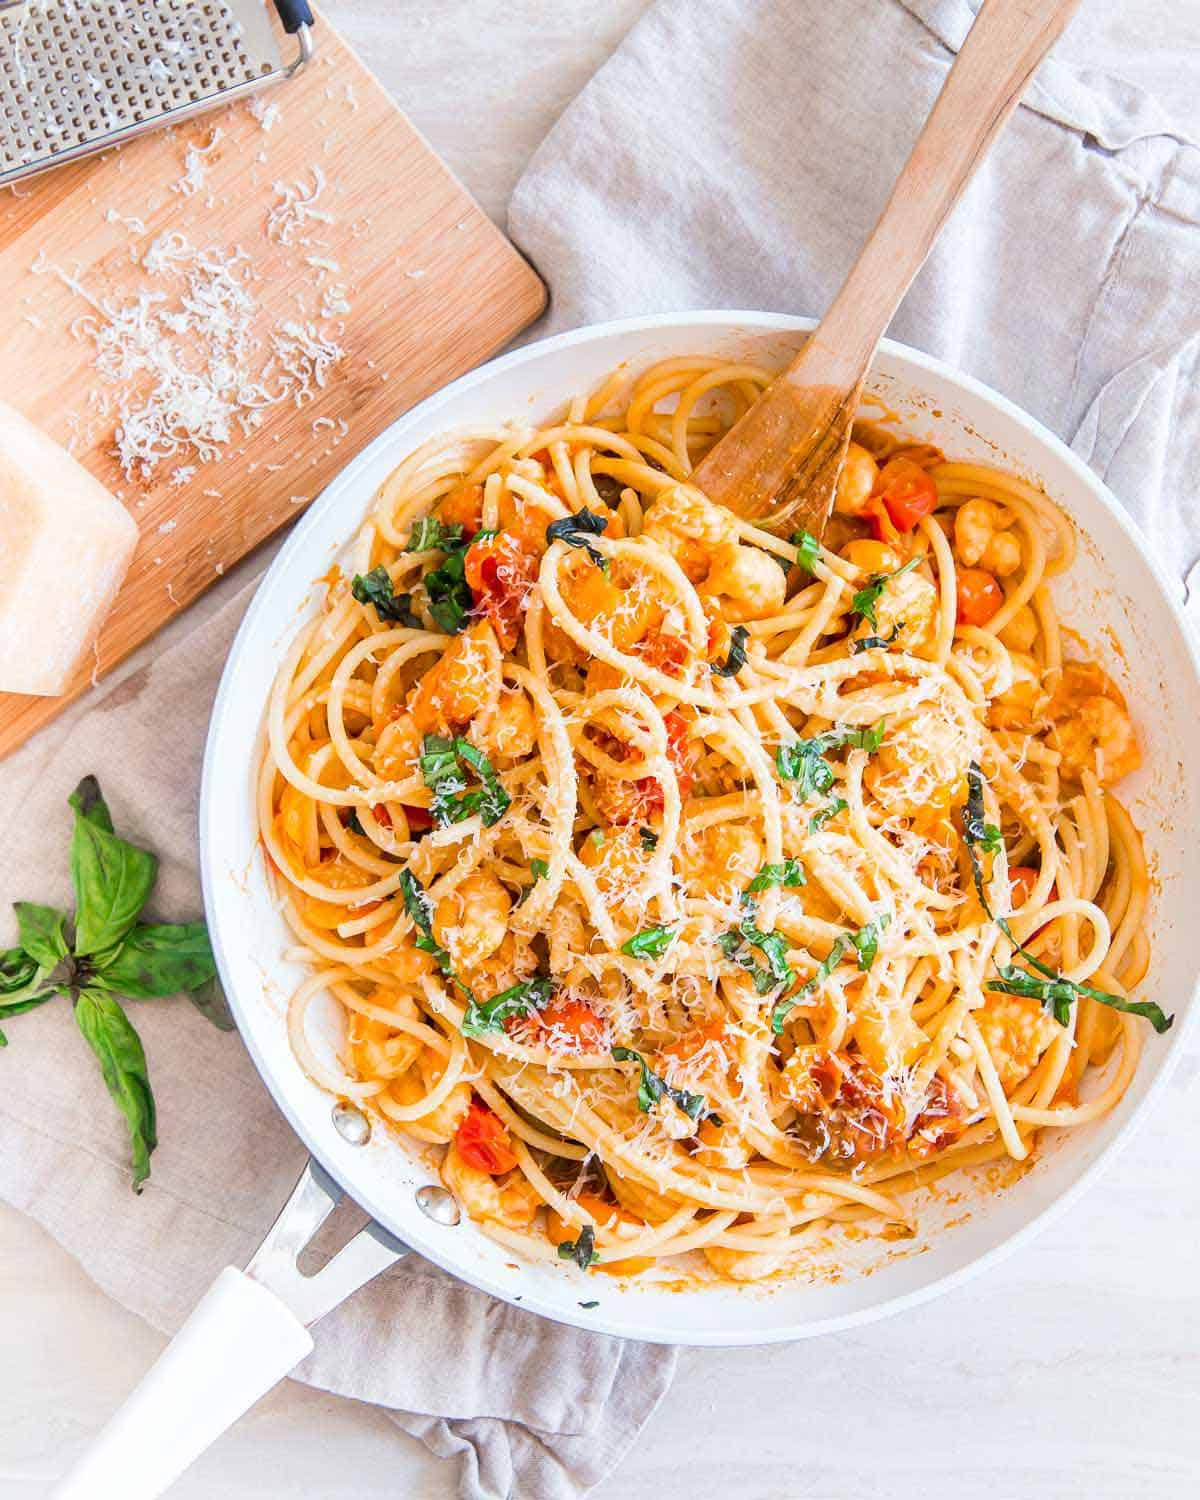 Easy, under 30 minute bucatini pasta recipe with garlic shrimp and cherry tomatoes.